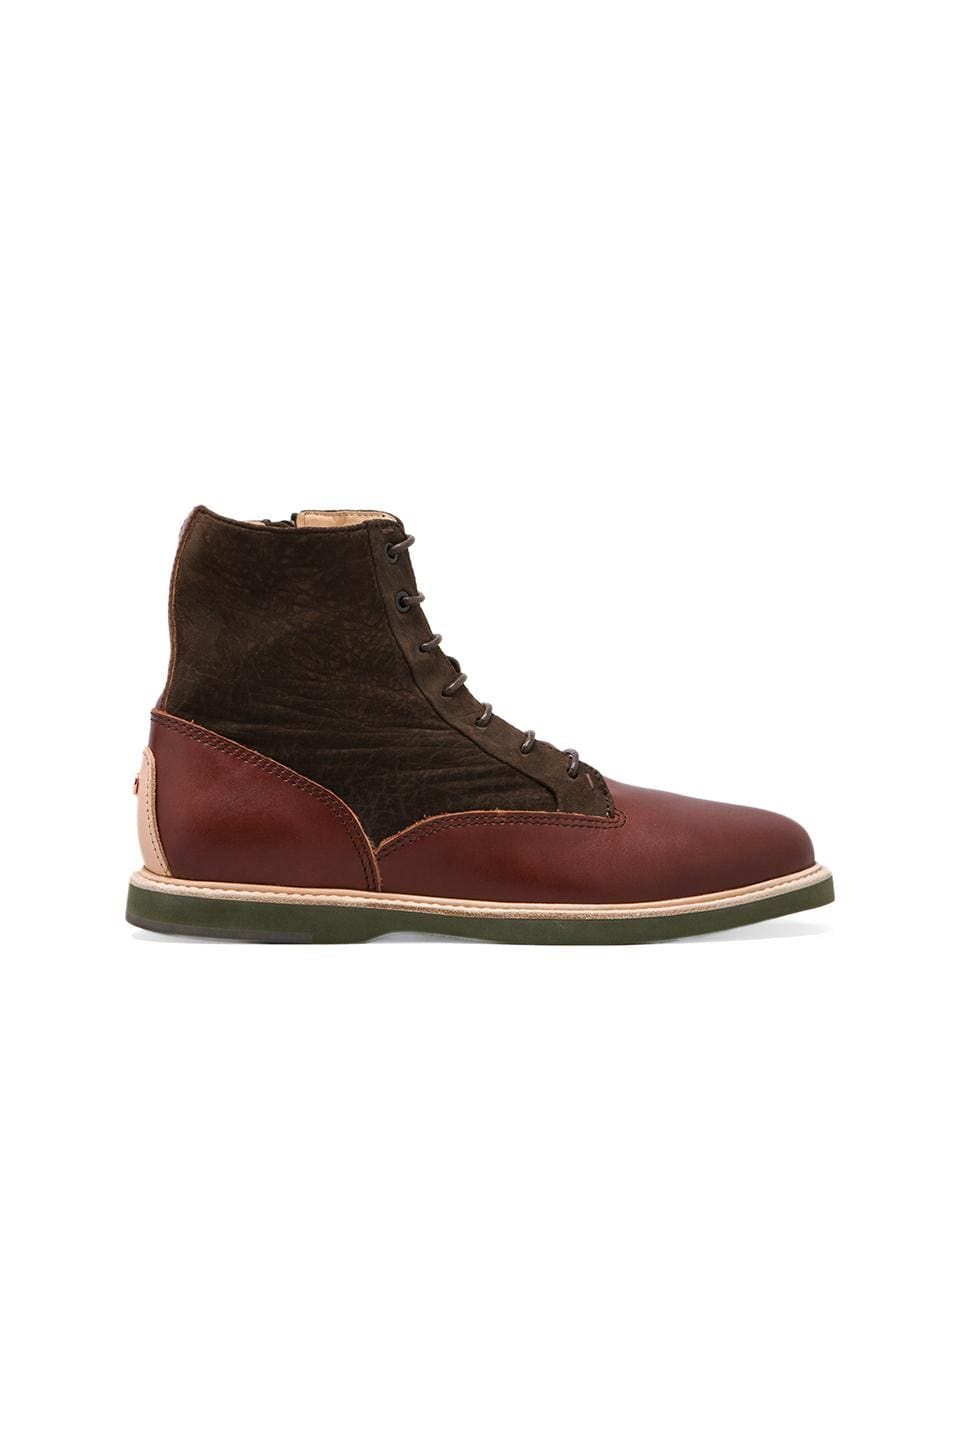 Thorocraft Hutchinson in Dark Brown